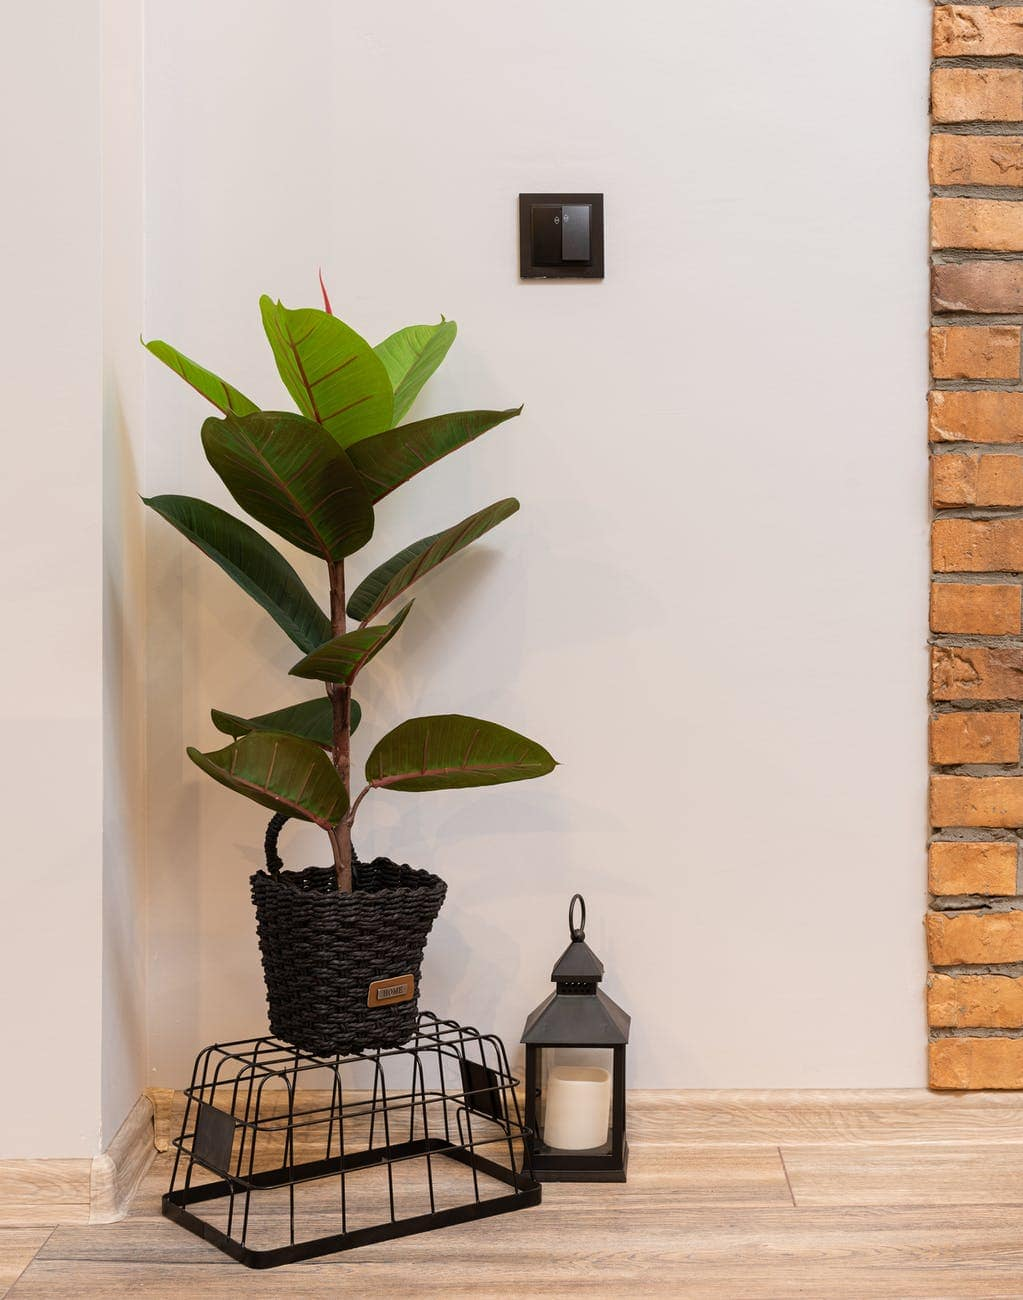 potted plant on basket near lantern with candle in room